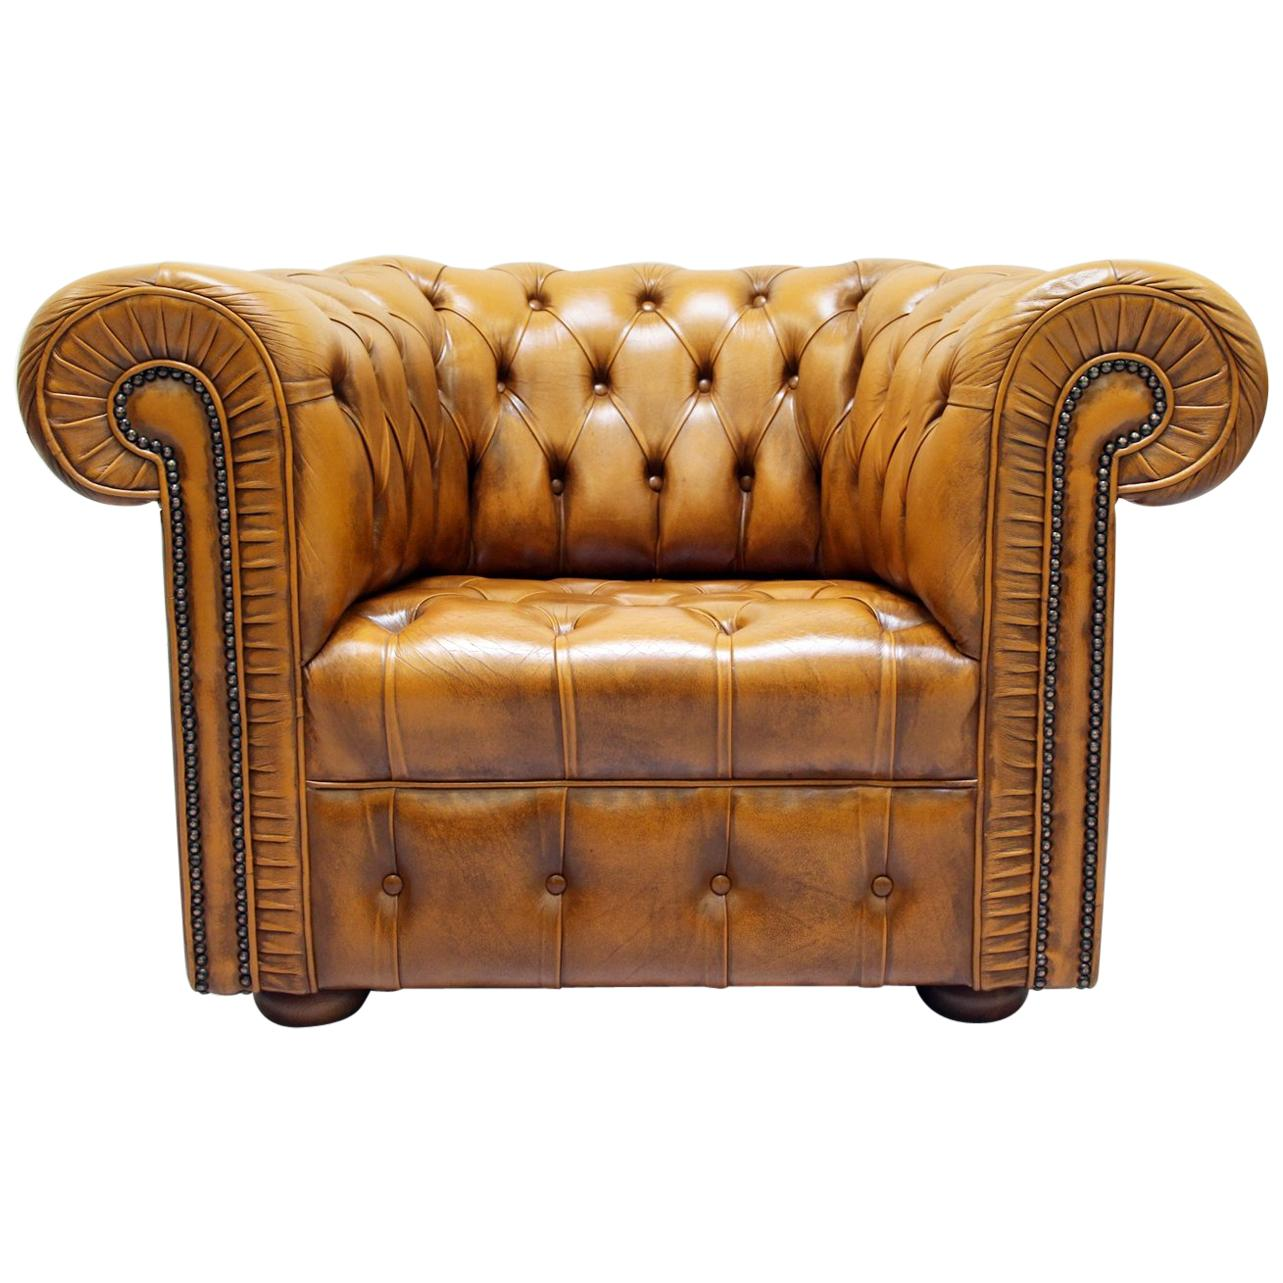 Ledersessel Vintage Chesterfield Ledersessel Antik Vintage Englisch Sessel For ...